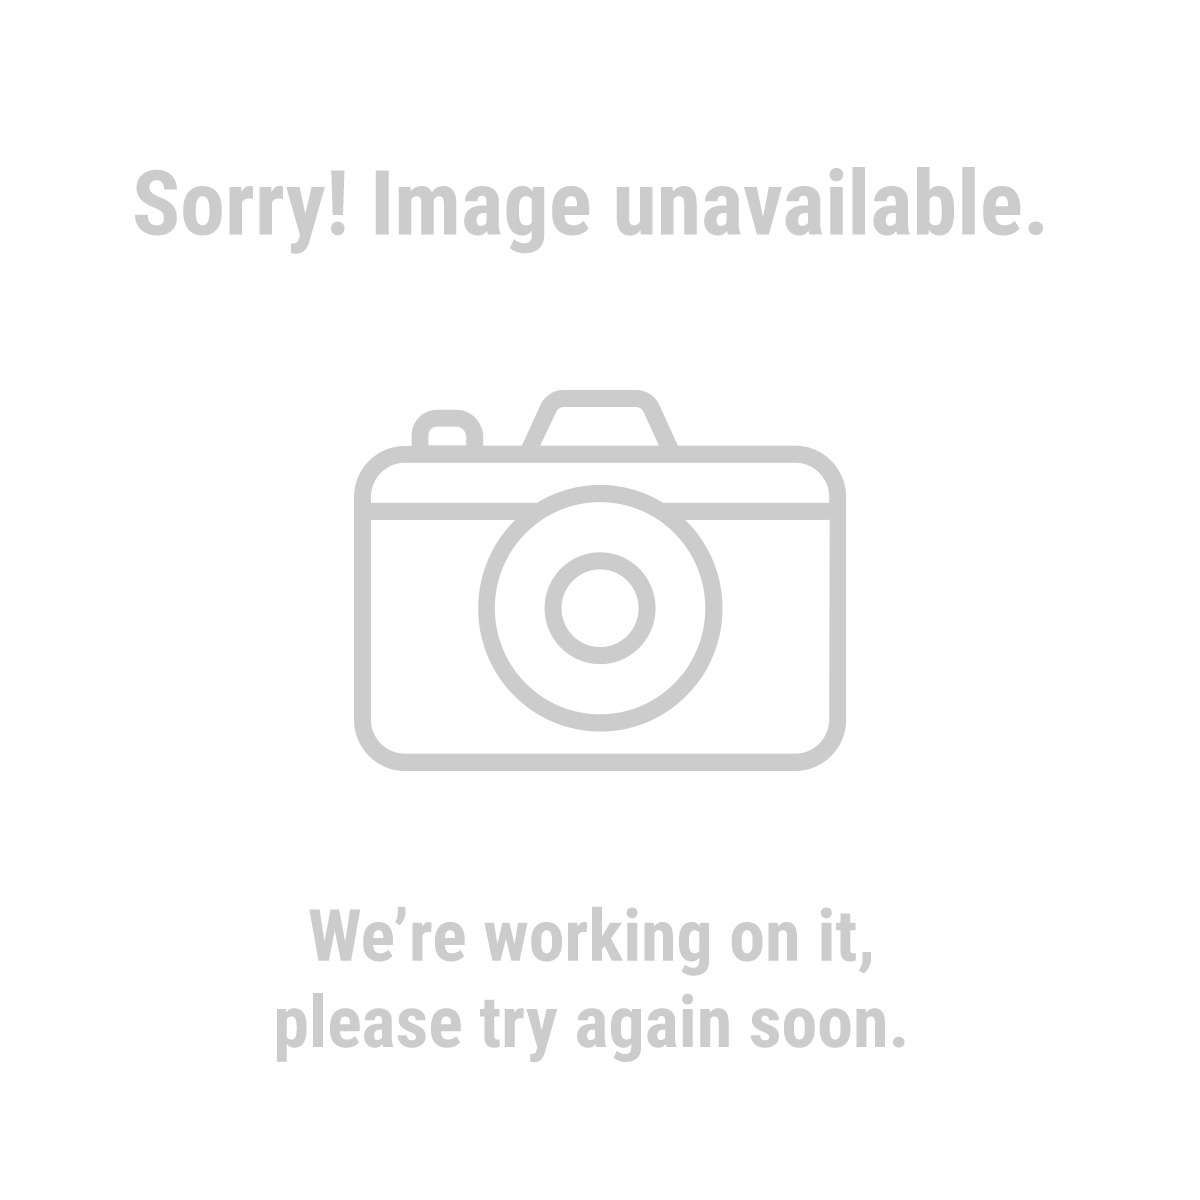 Haul-Master® 90325 42 Piece Tie Down Kit